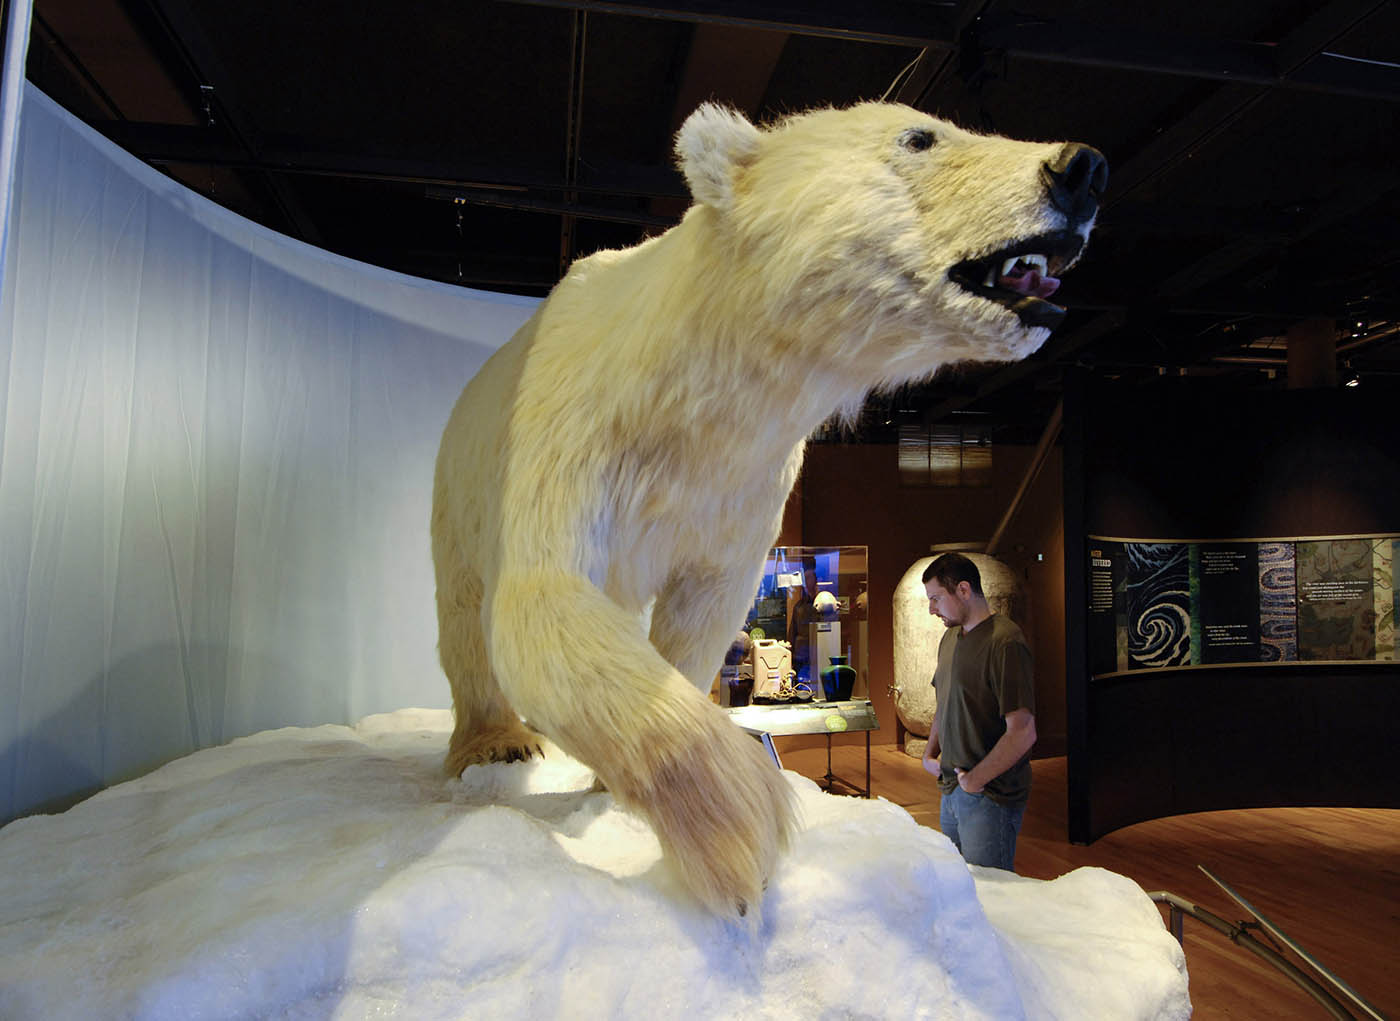 A lifelike model of a white polar bear stands atop an icy mount. A visitor at the right of the image examines a text panel.